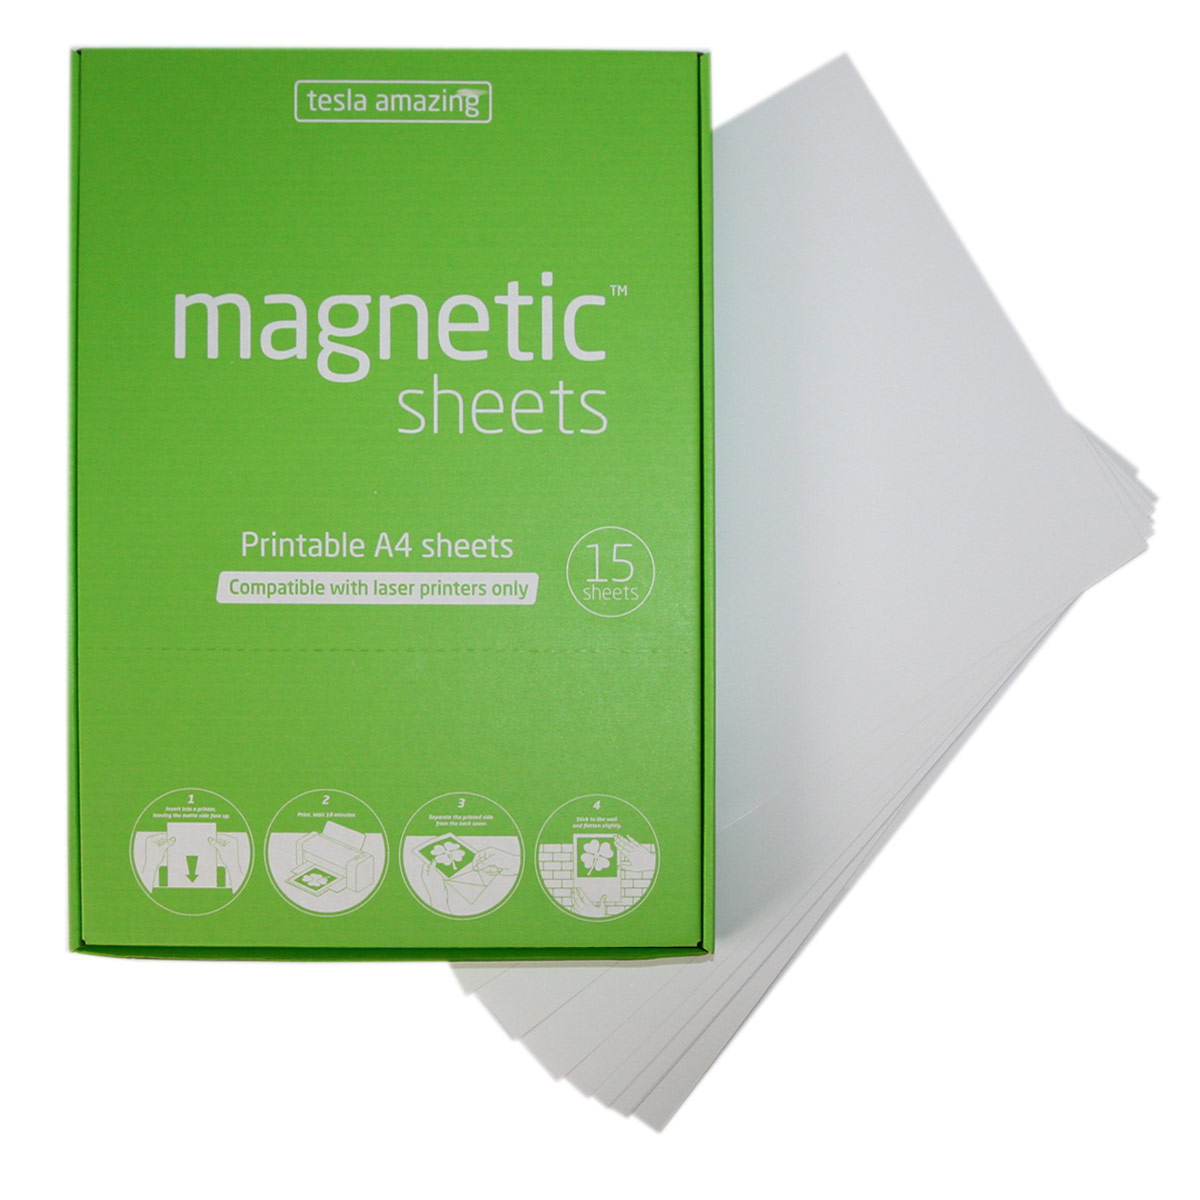 graphic relating to Laser Printable Magnetic Sheets identify Magnetic sheets for laser printers